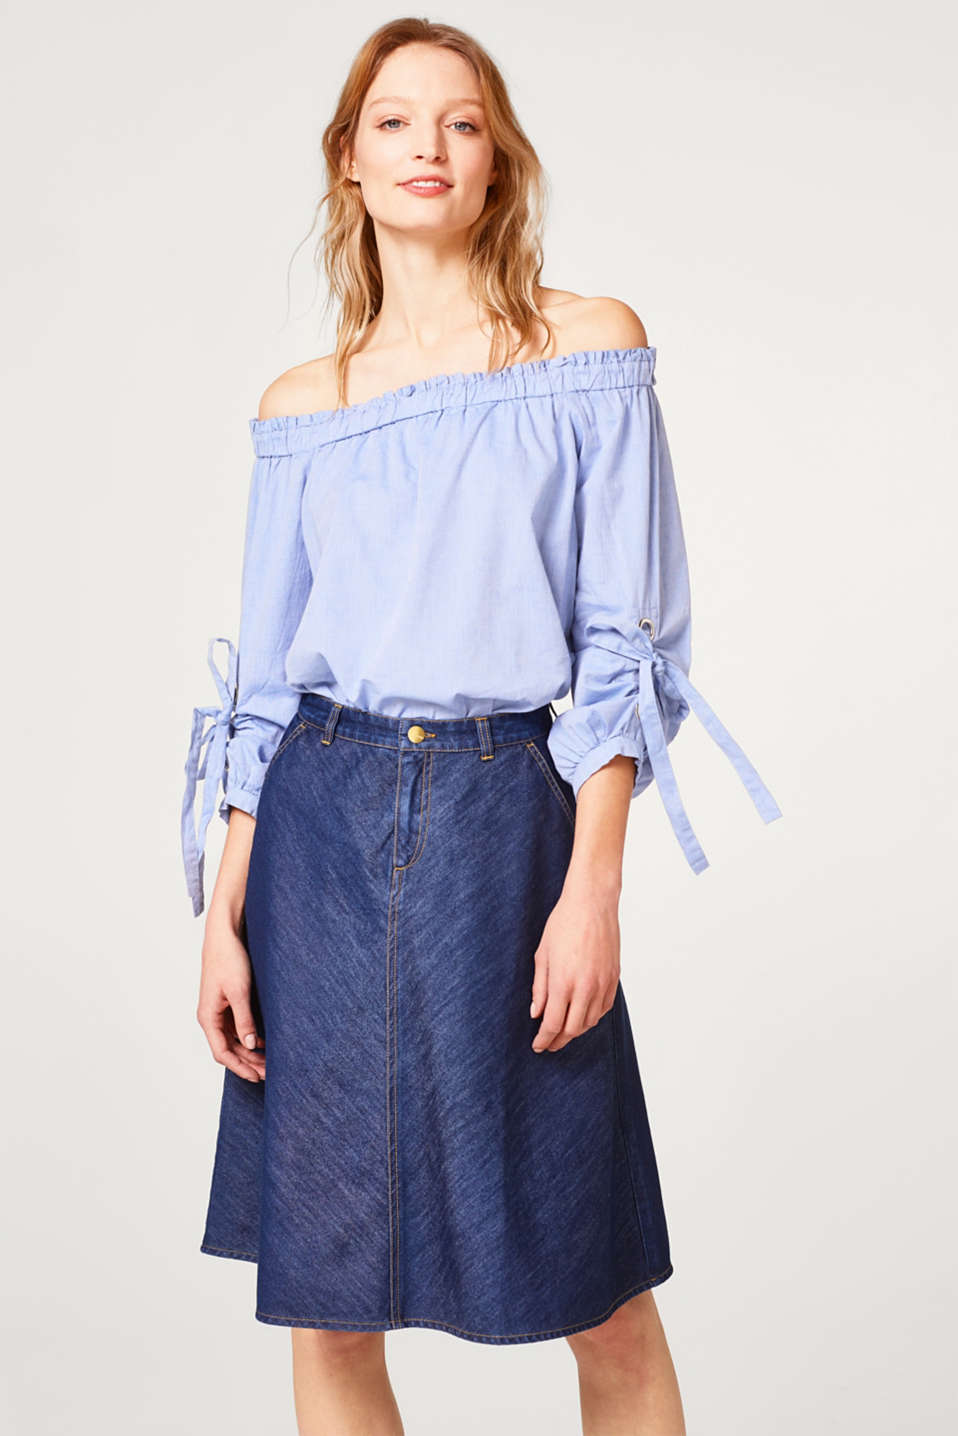 Esprit - Flared denim skirt made of lightweight denim